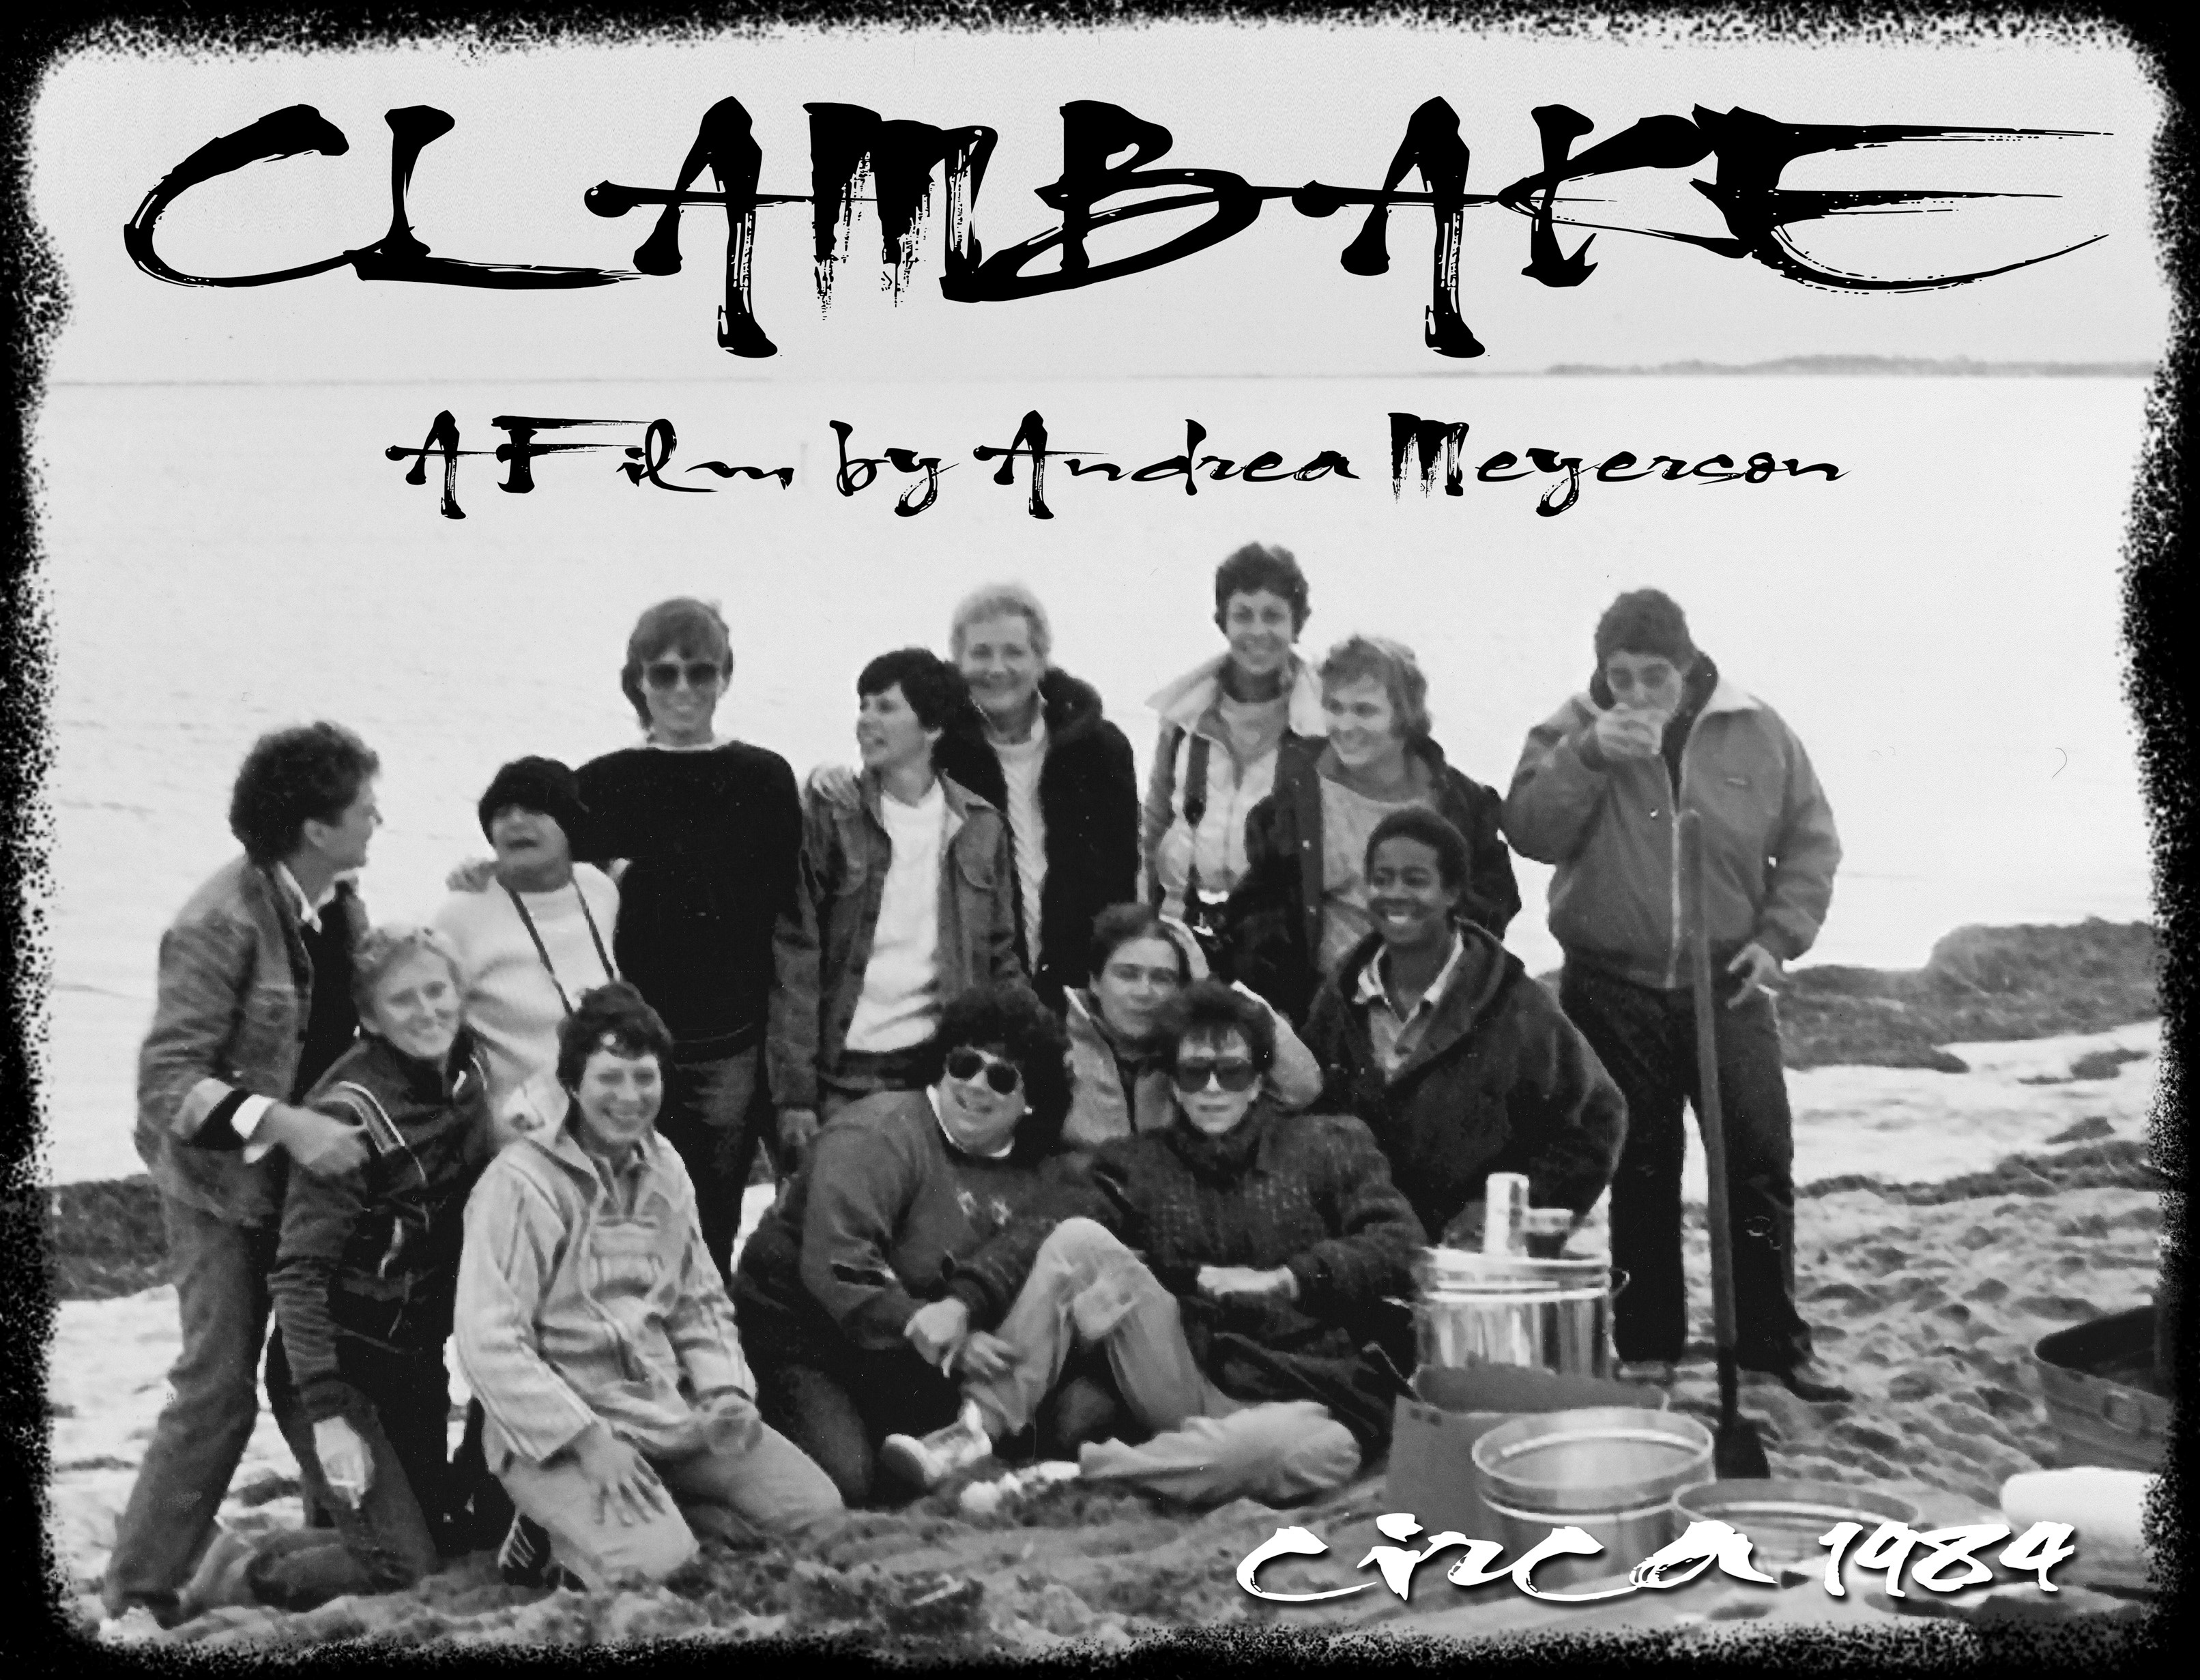 Clambake_pcd_front.jpg